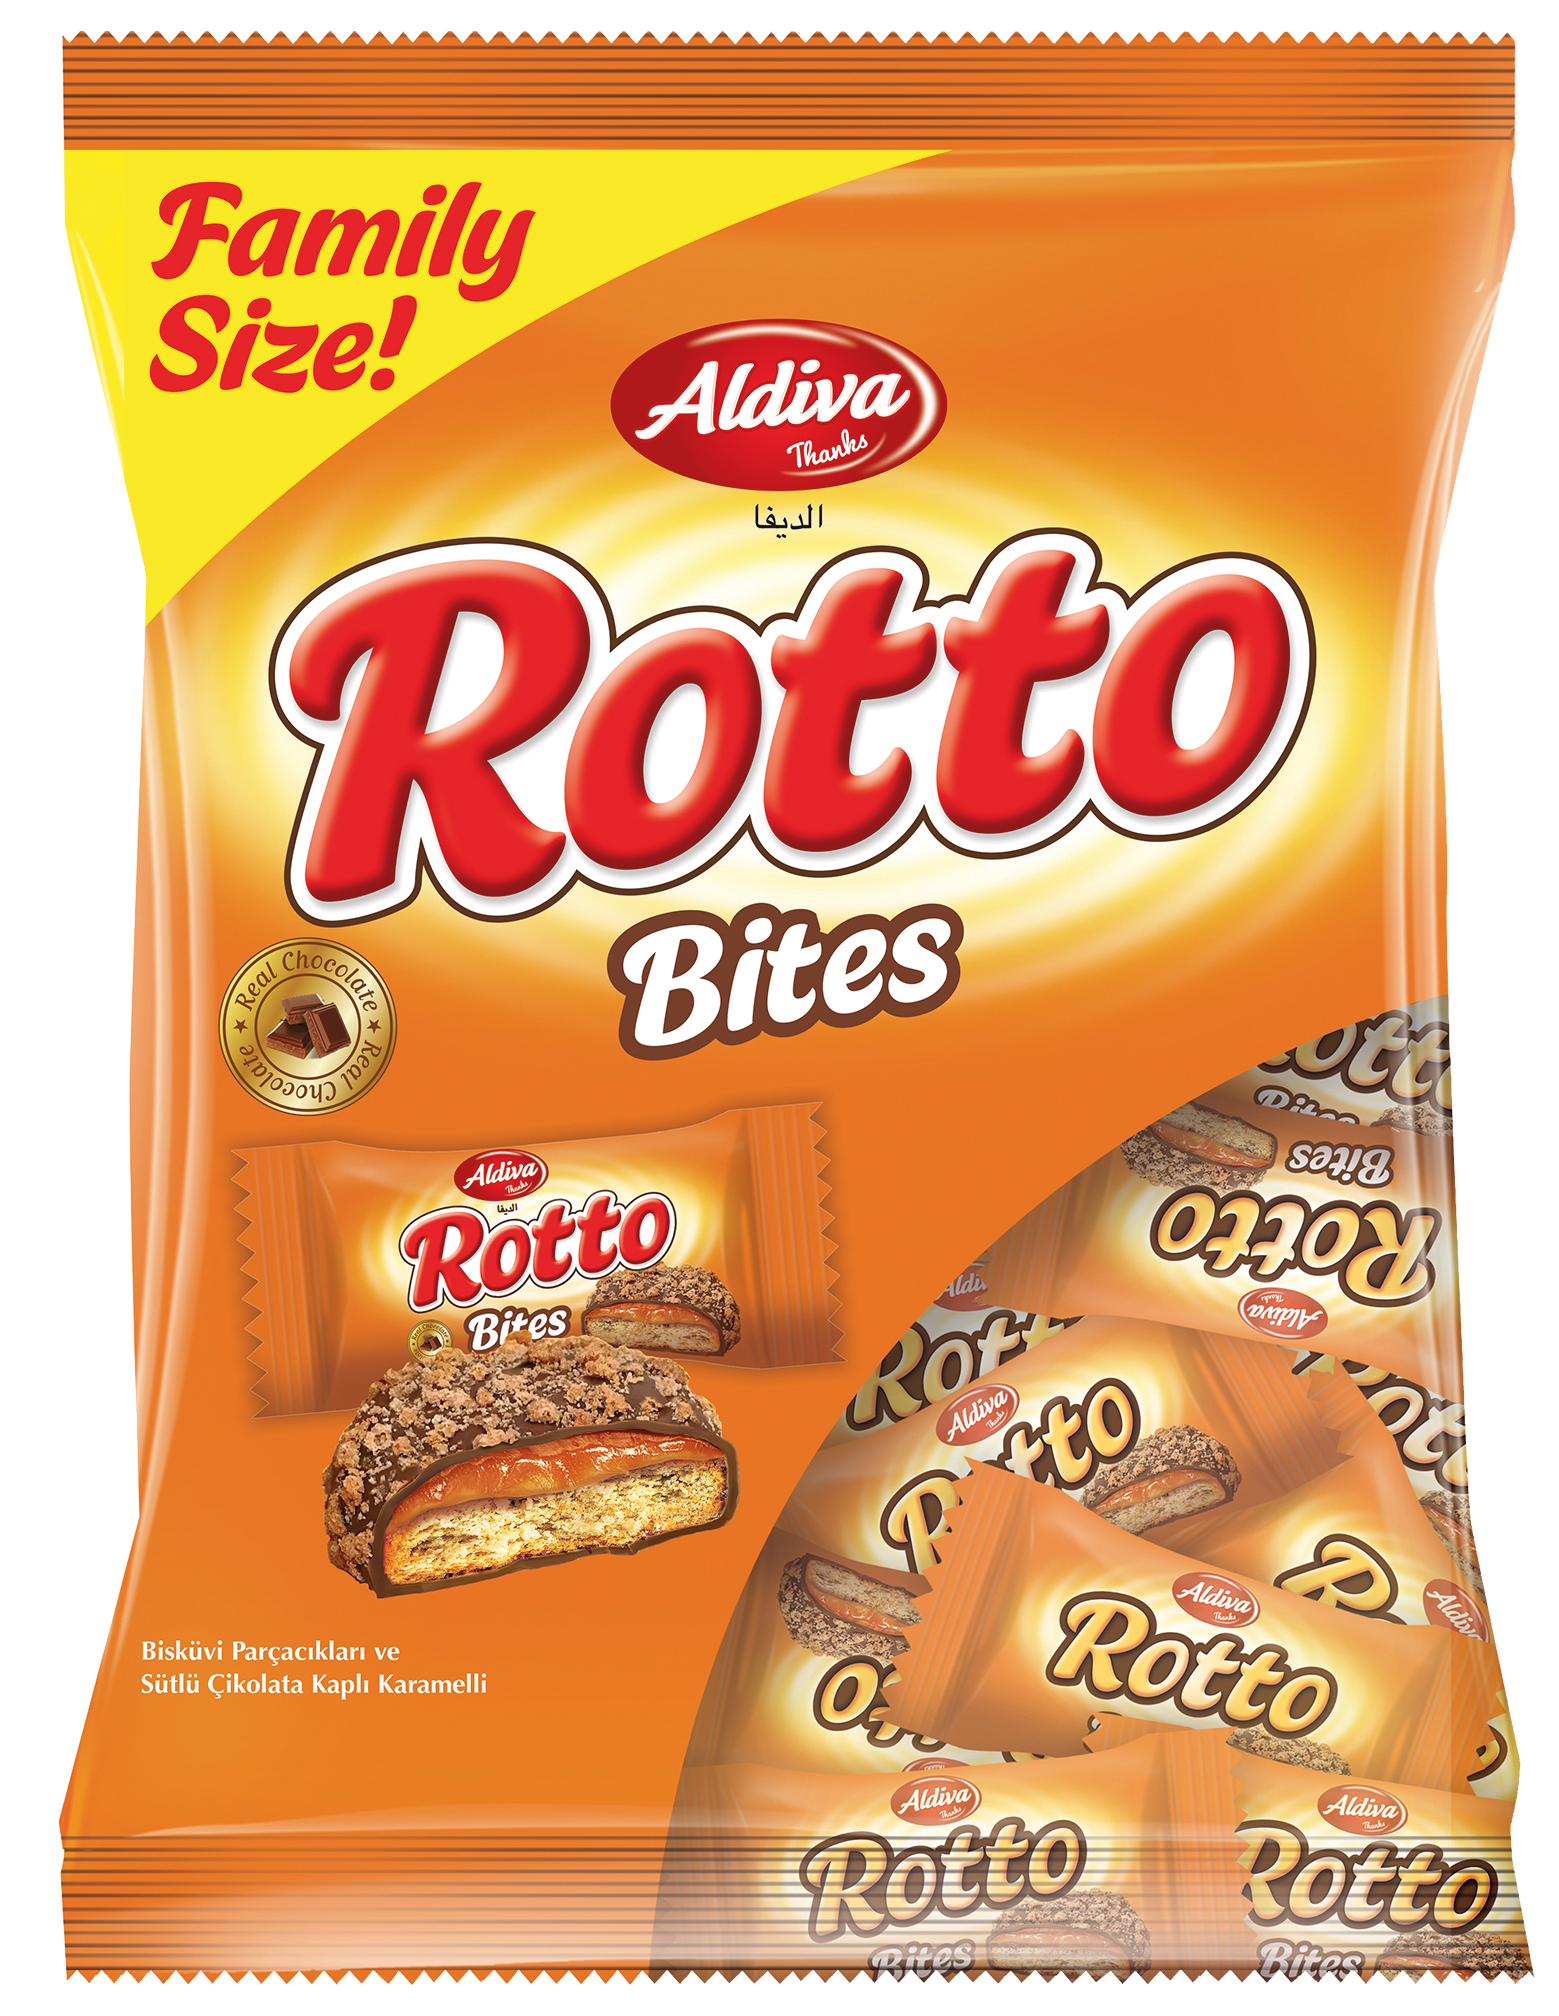 Rotto Bites Milk Chocolate & Caramel Coated Biscuits with Sprinkles 230g